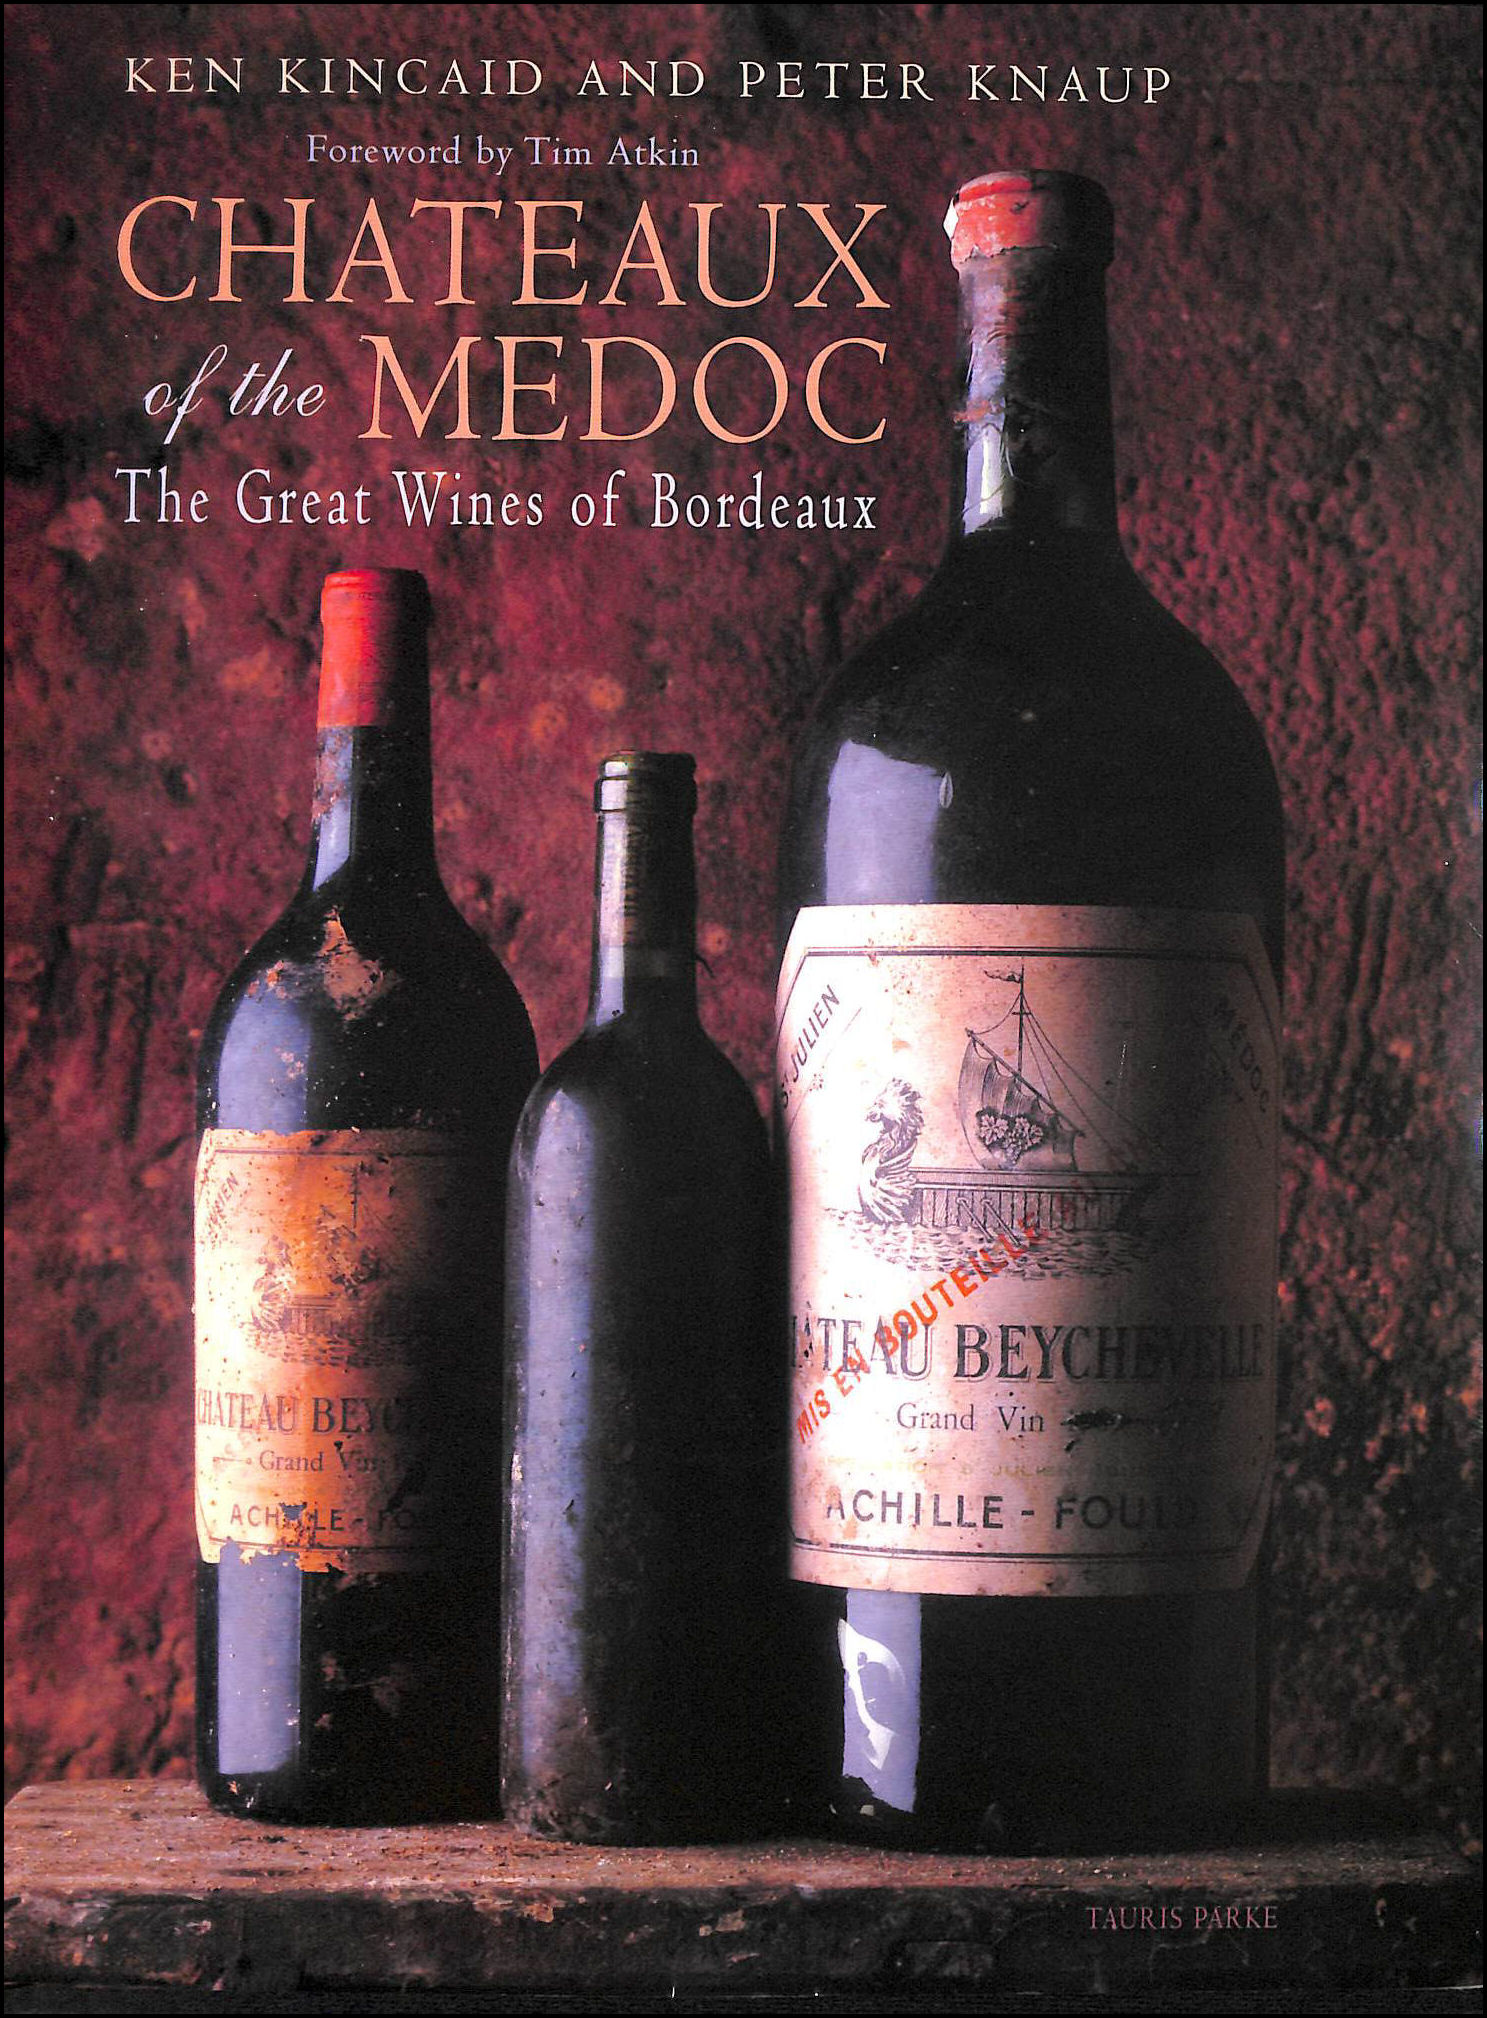 Image for Chateaux of the Medoc: The Great Wines of Bordeaux